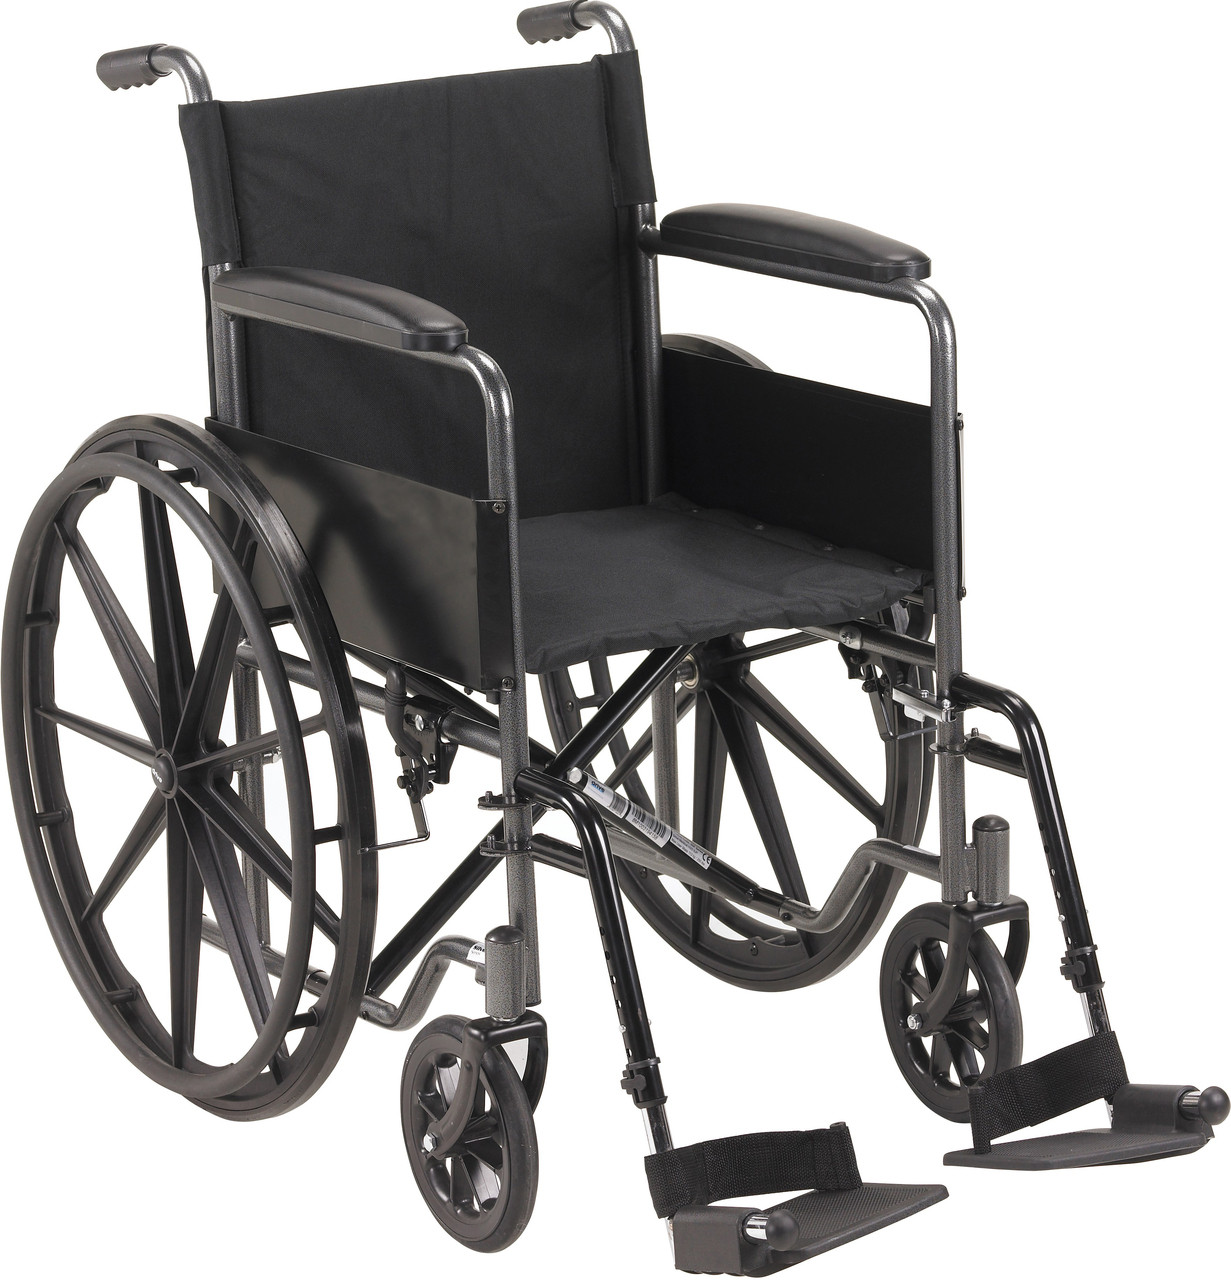 uk availability 4f3d4 7ef9e Wheelchair Rentals   K1 Standard Wheelchairs for Rent